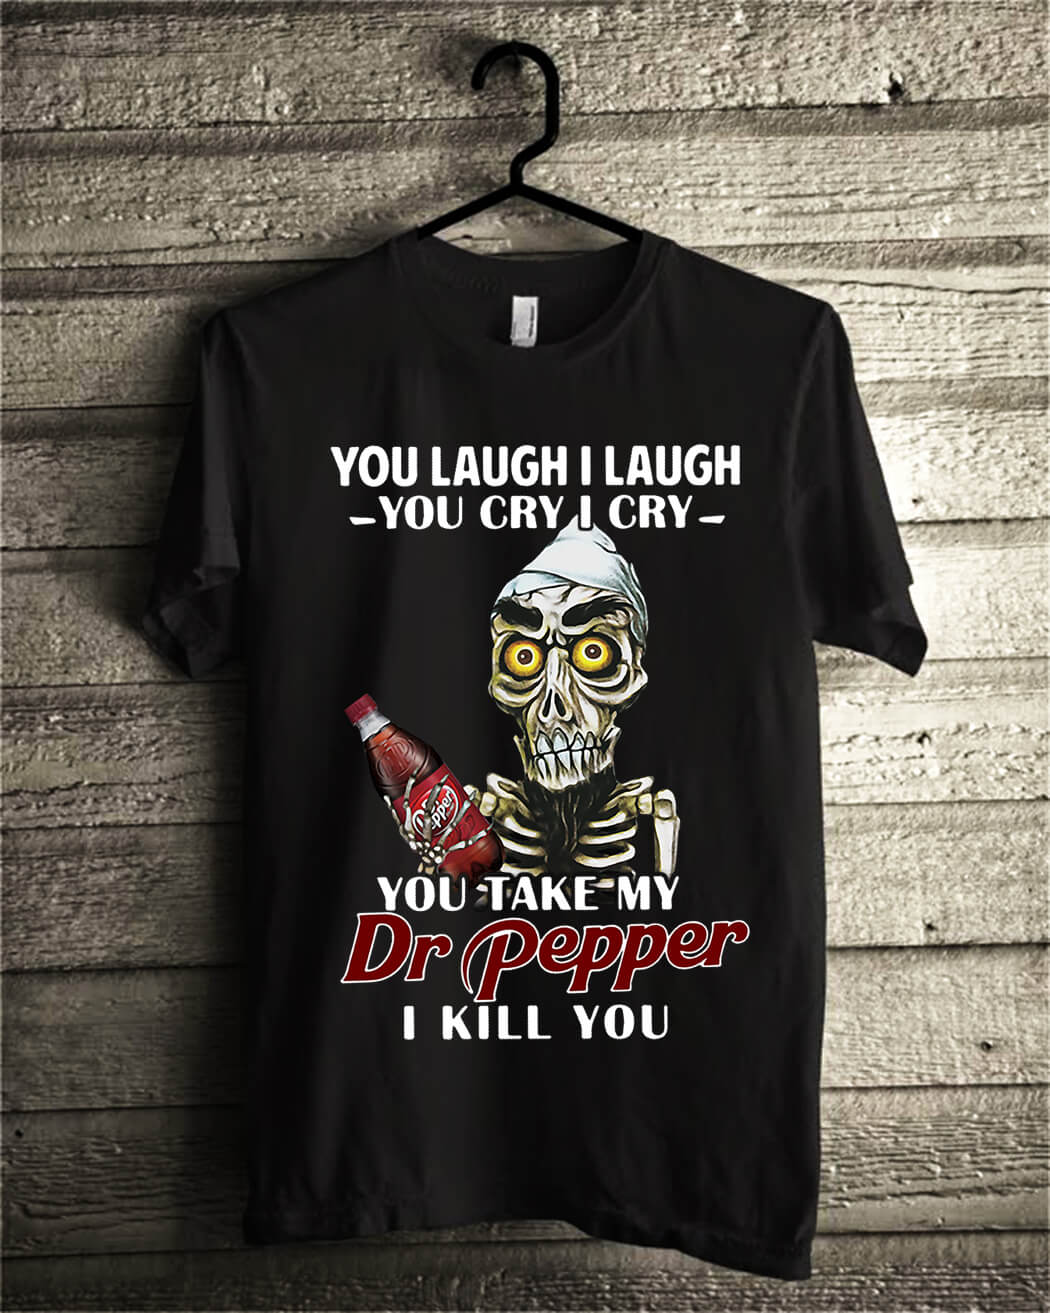 You laugh I laugh you cry I cry you take my Dr Pepper I kill you shirt